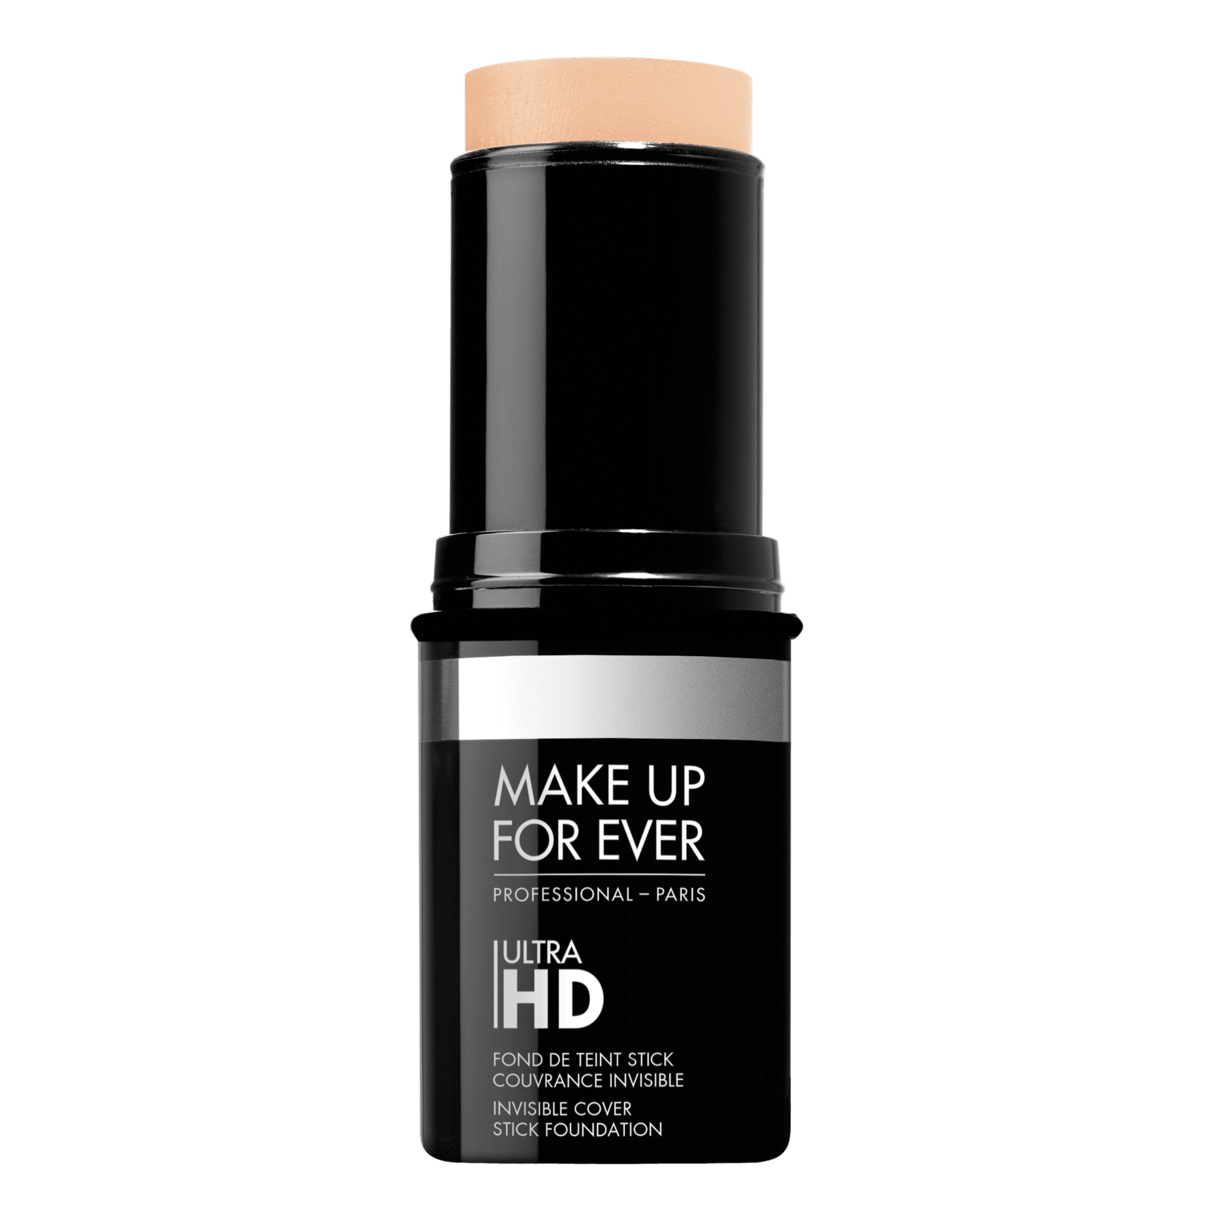 Make Up For Ever Free Australian Post Reviews Afterpay